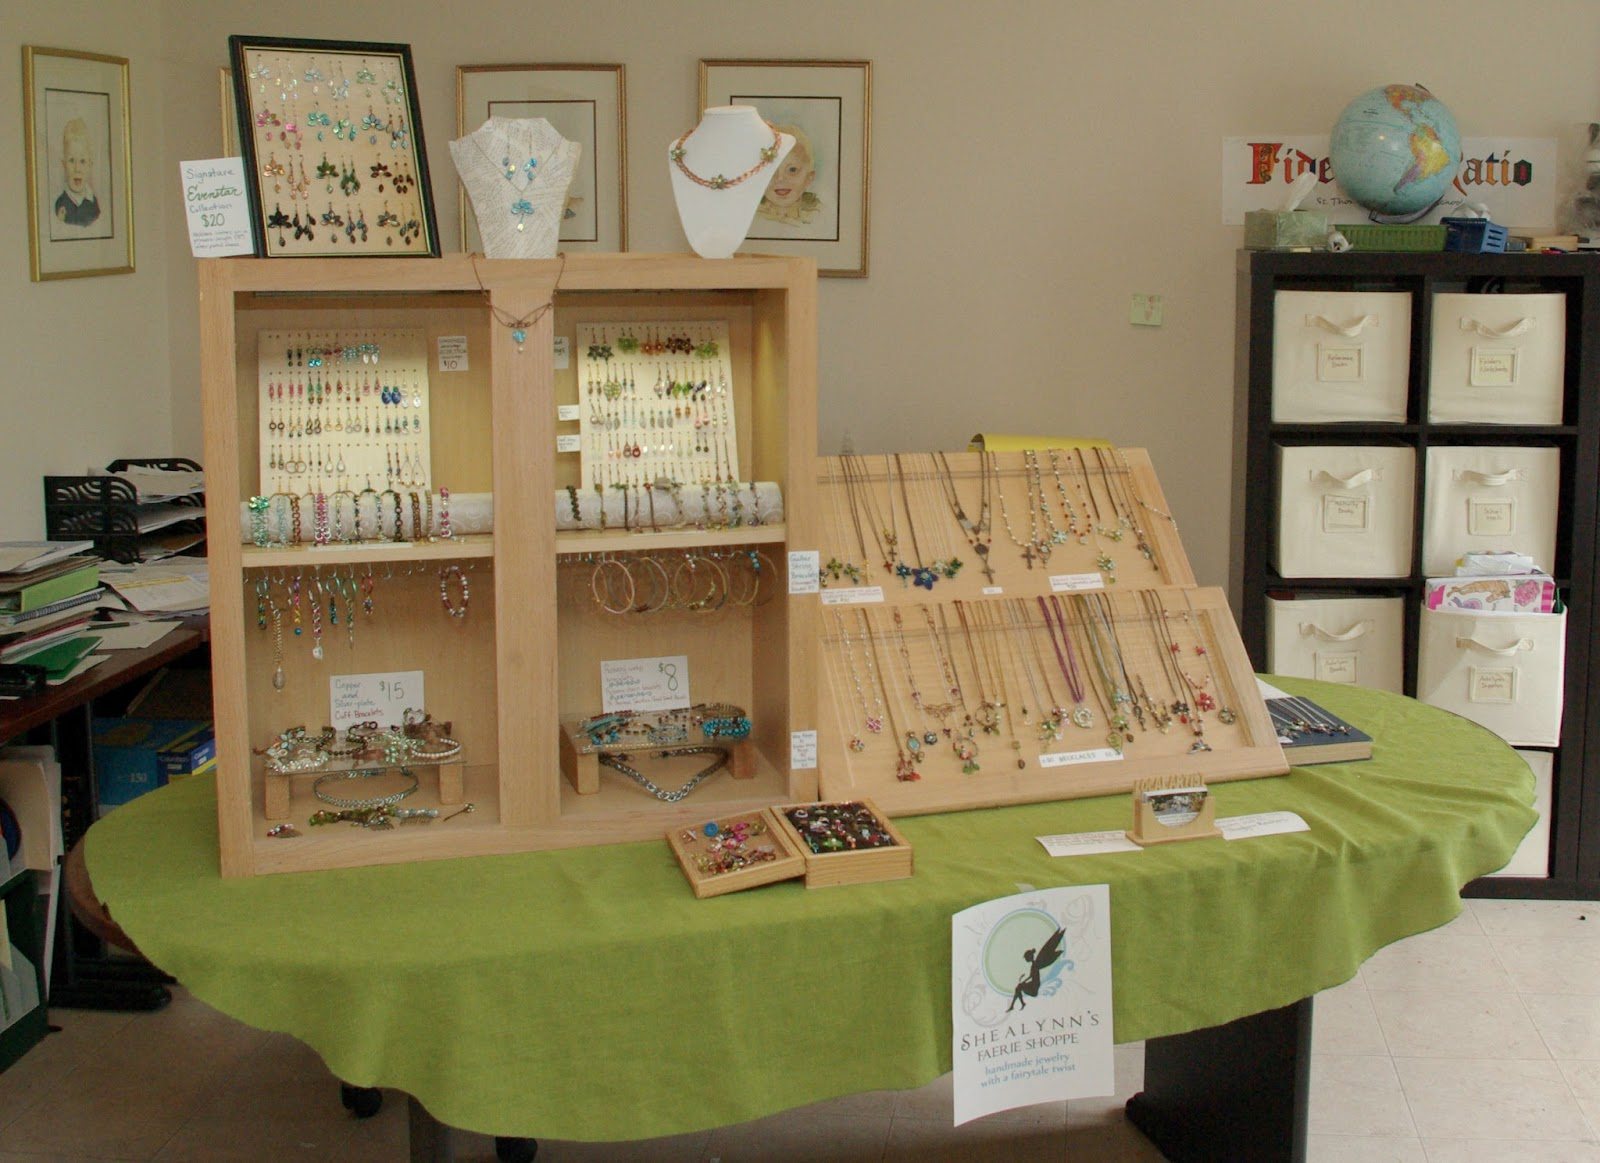 My diy craft fair display shealynn 39 s faerie shoppe for Display necklaces craft fair